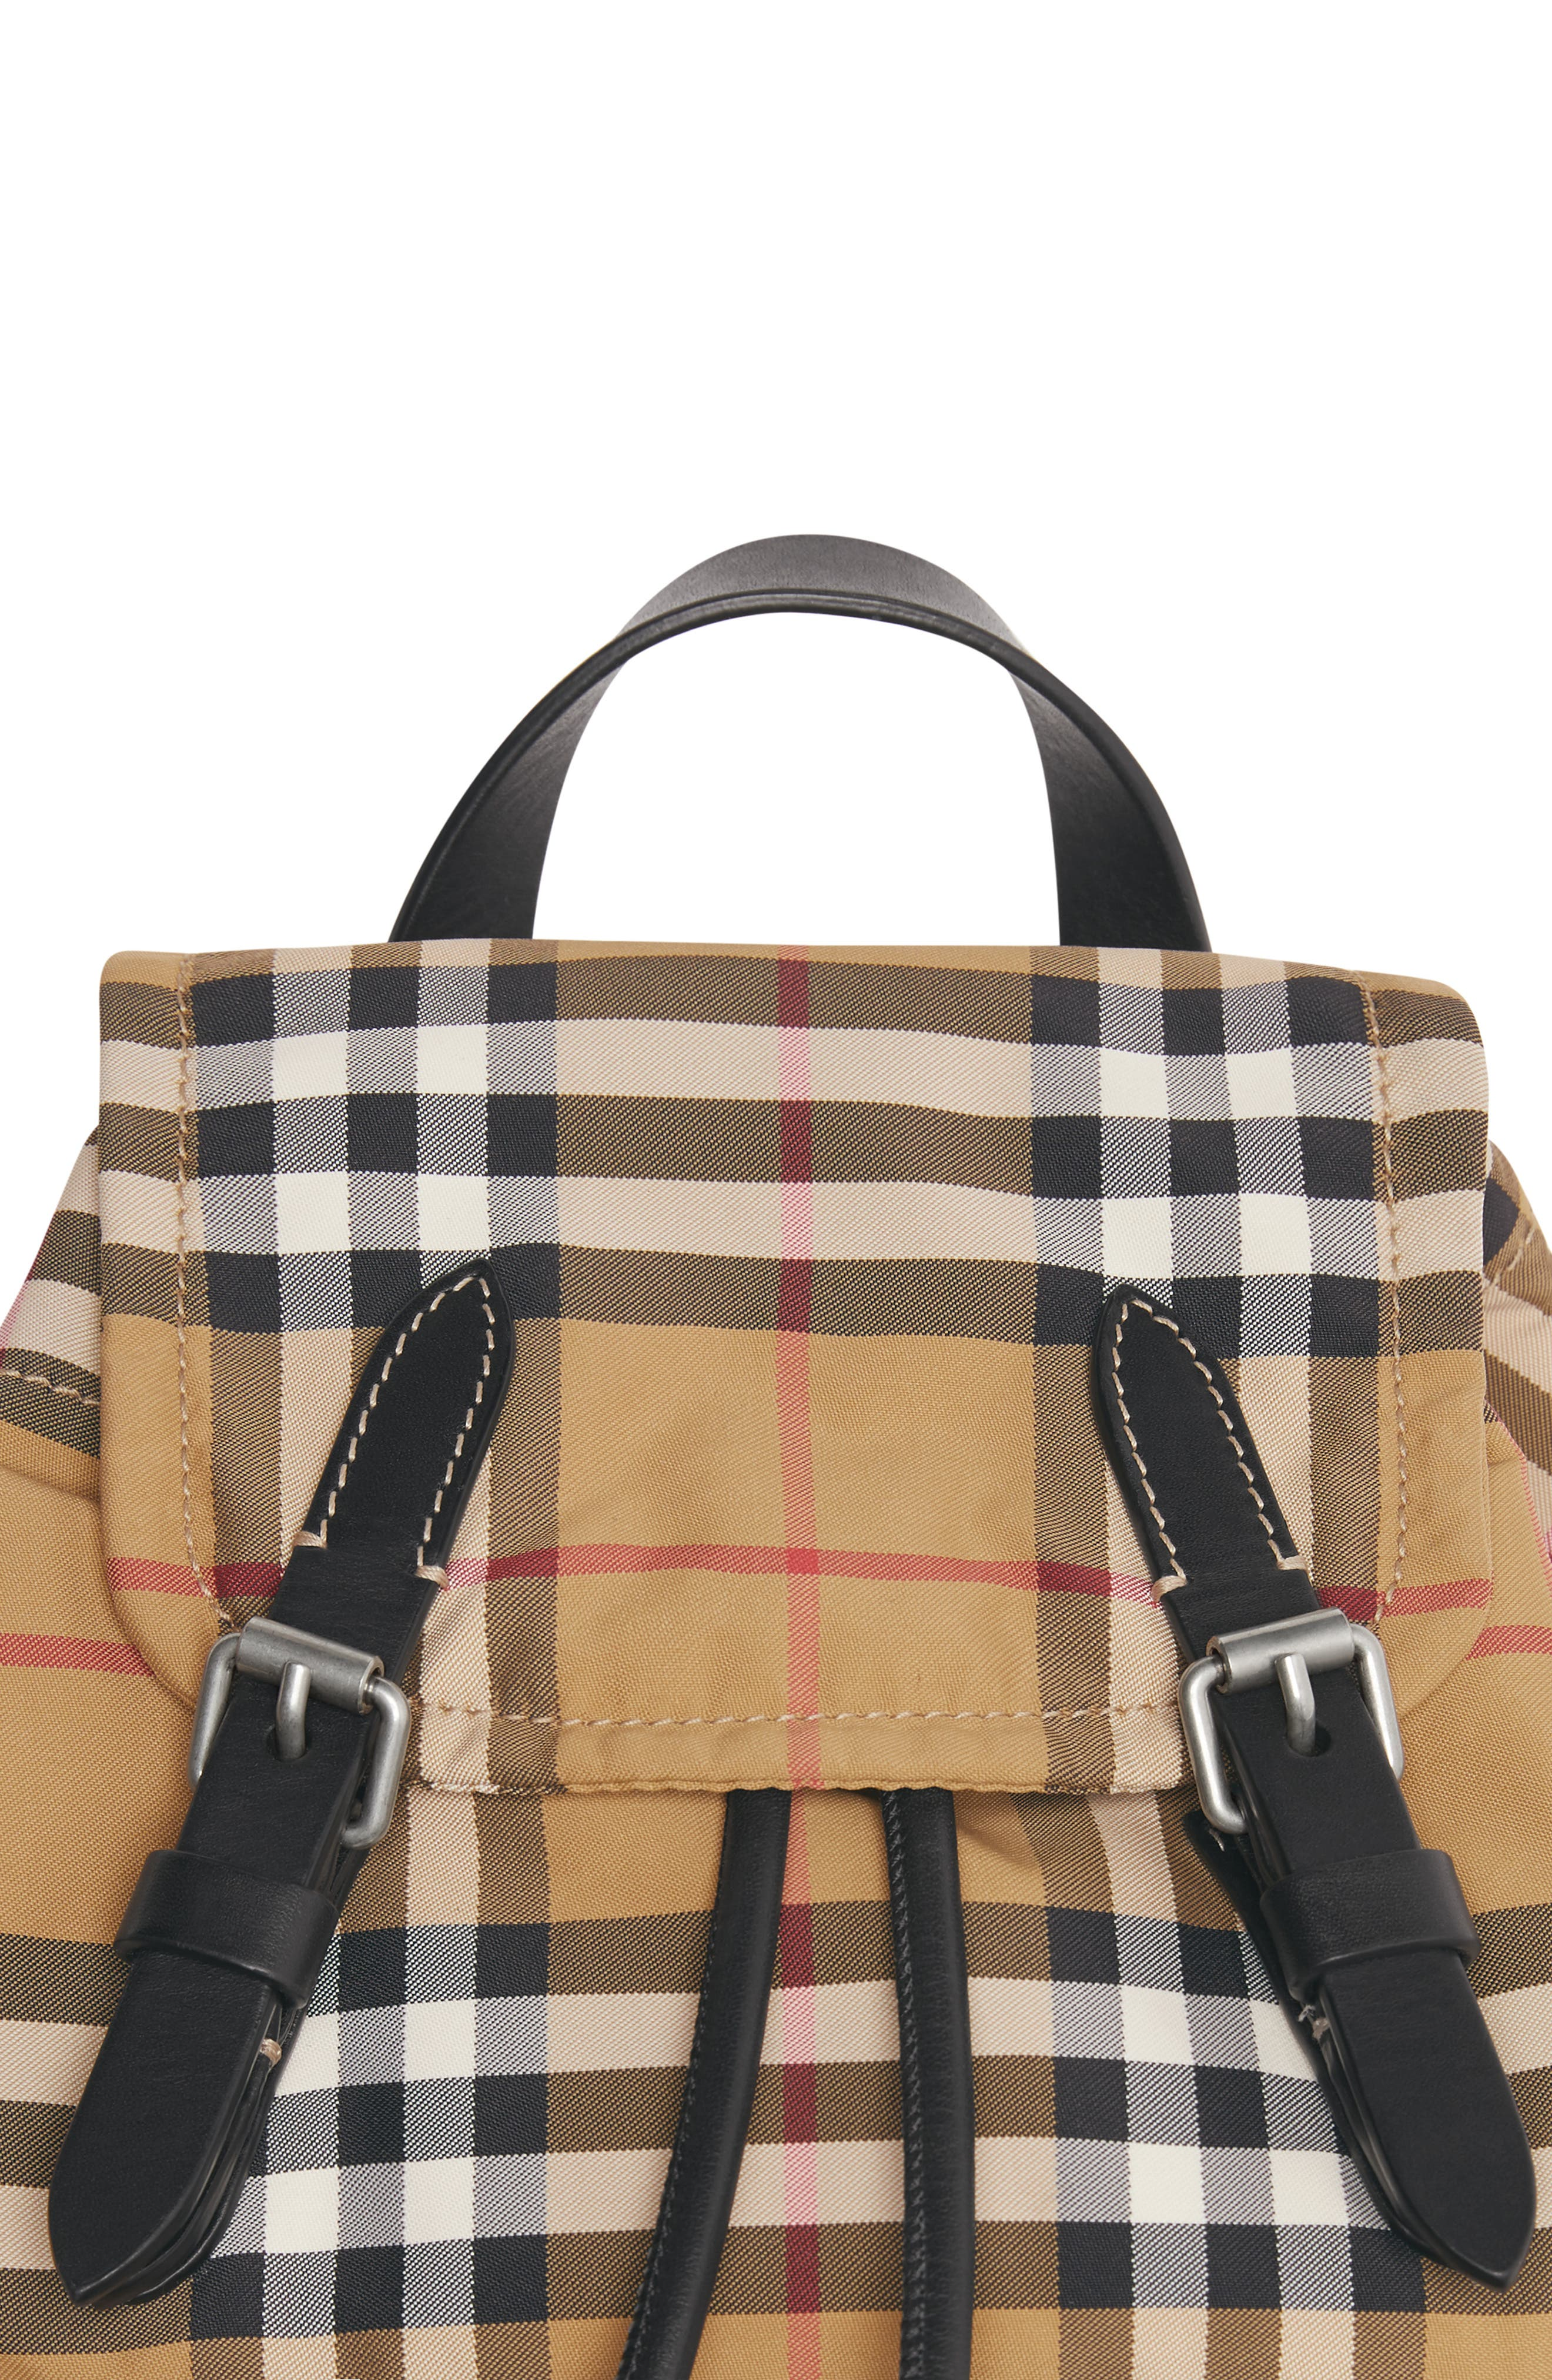 BURBERRY,                             Small Rucksack Vintage Check Nylon Backpack,                             Alternate thumbnail 5, color,                             ANTIQUE YELLOW/ BLACK